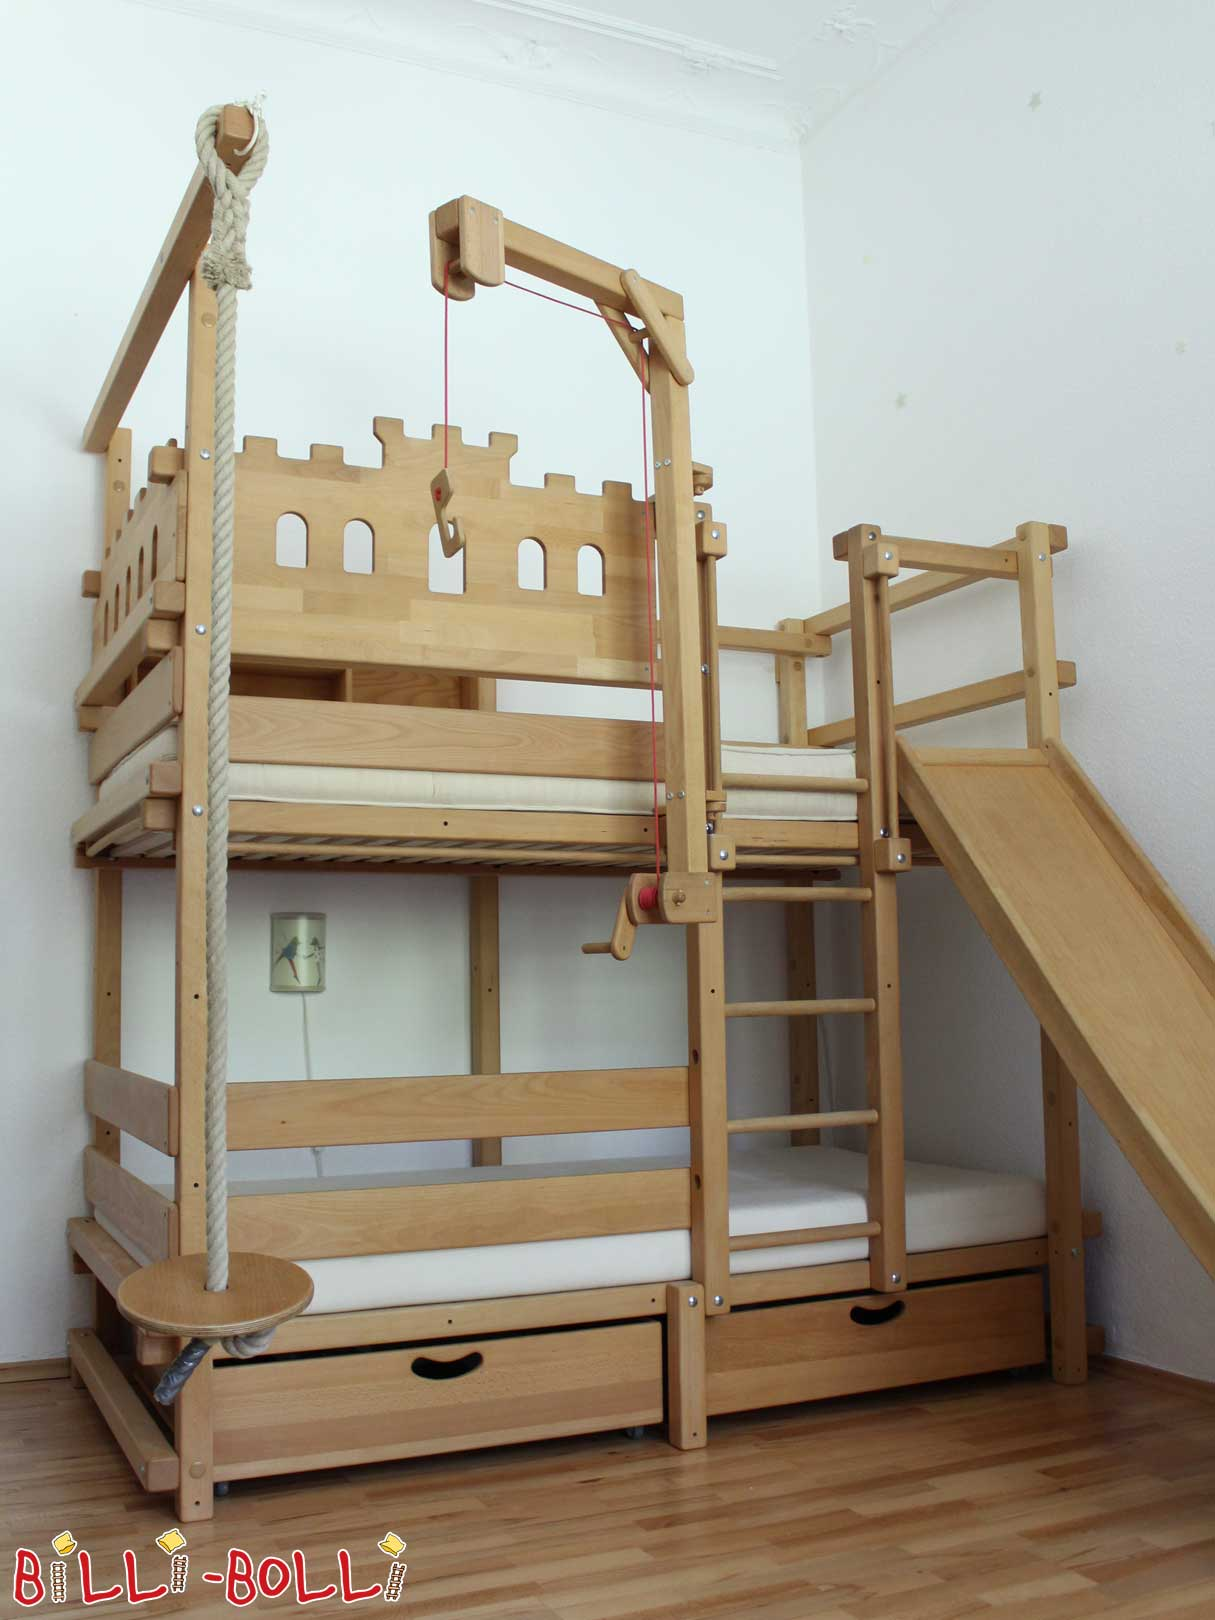 Billi-Bolli bunk bed, 100 x 200 cm, beech with oil wax treatment (second hand bunk bed)